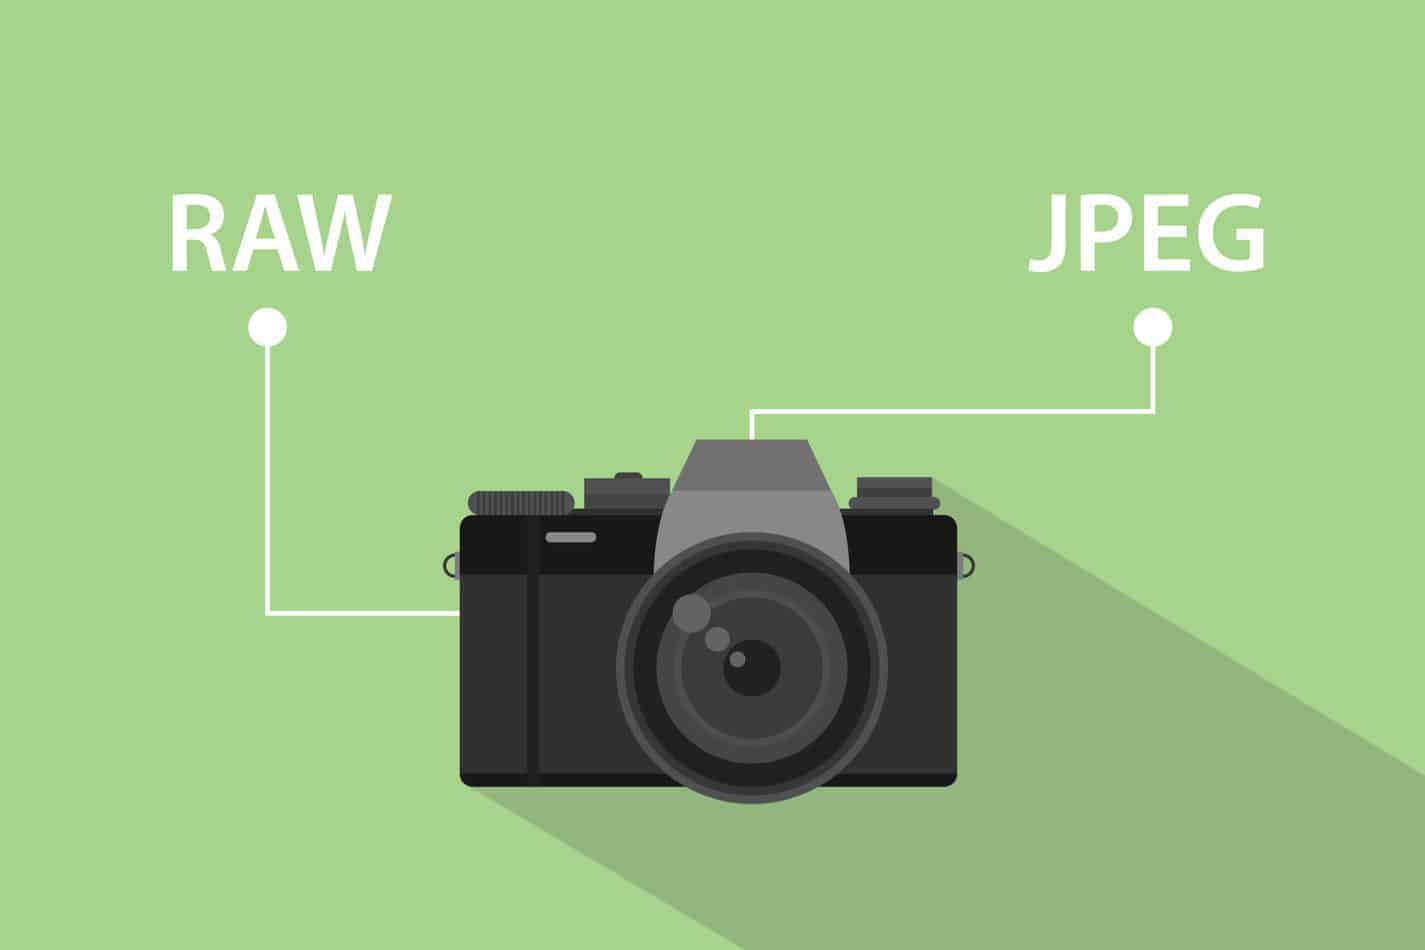 Does Converting RAW to JPEG Lose Quality